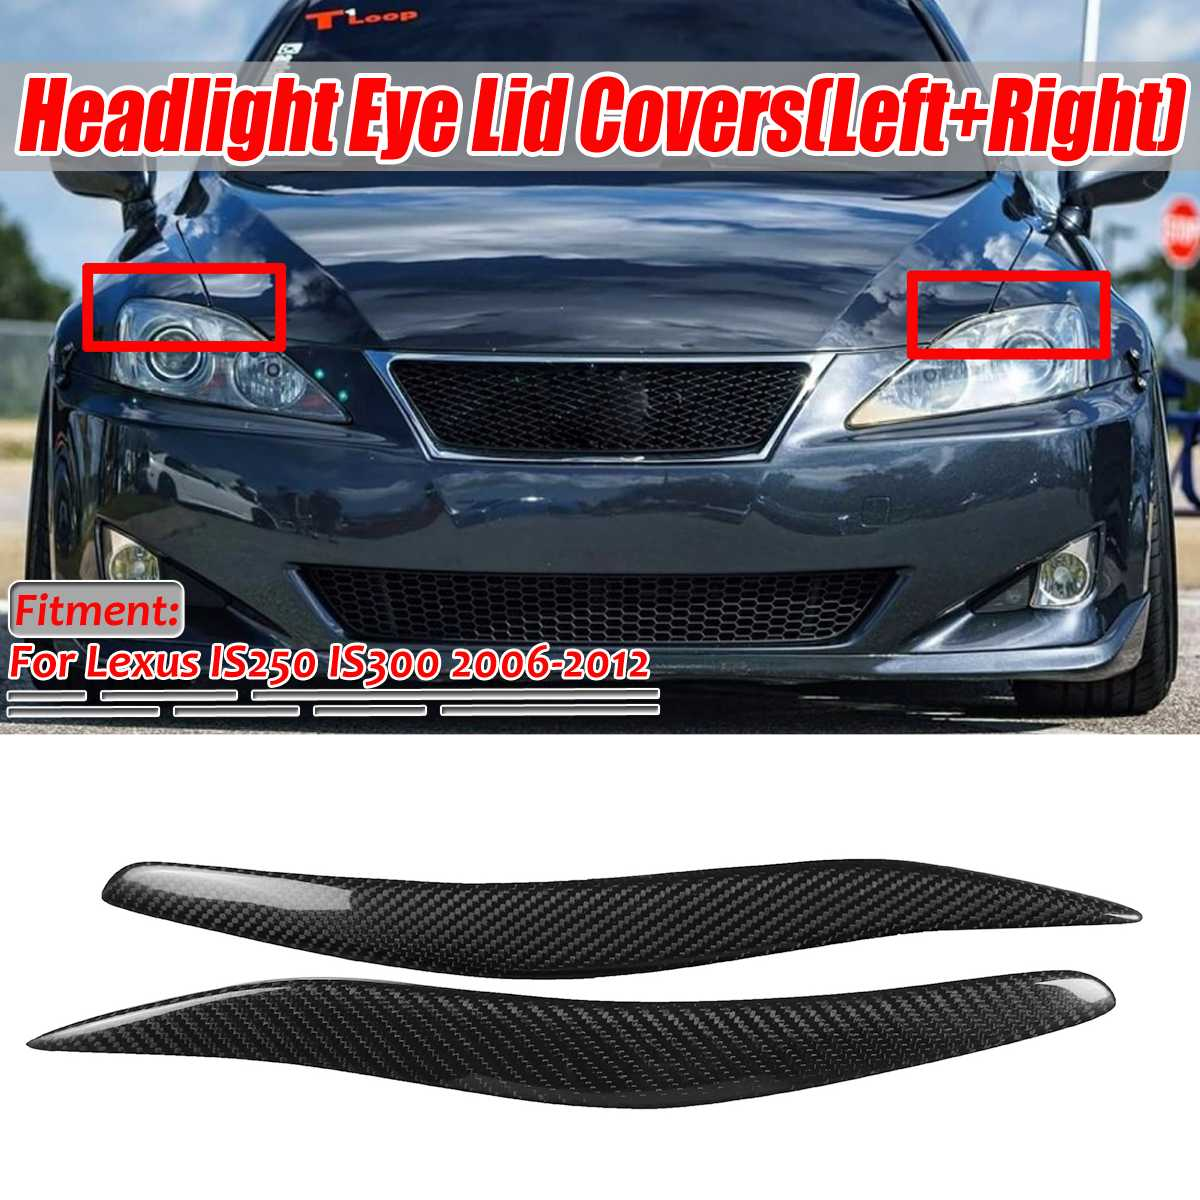 For Lexus IS250 IS300 2006-2012 Carbon Fiber Headlight Cover Eyelids Eyebrows 2